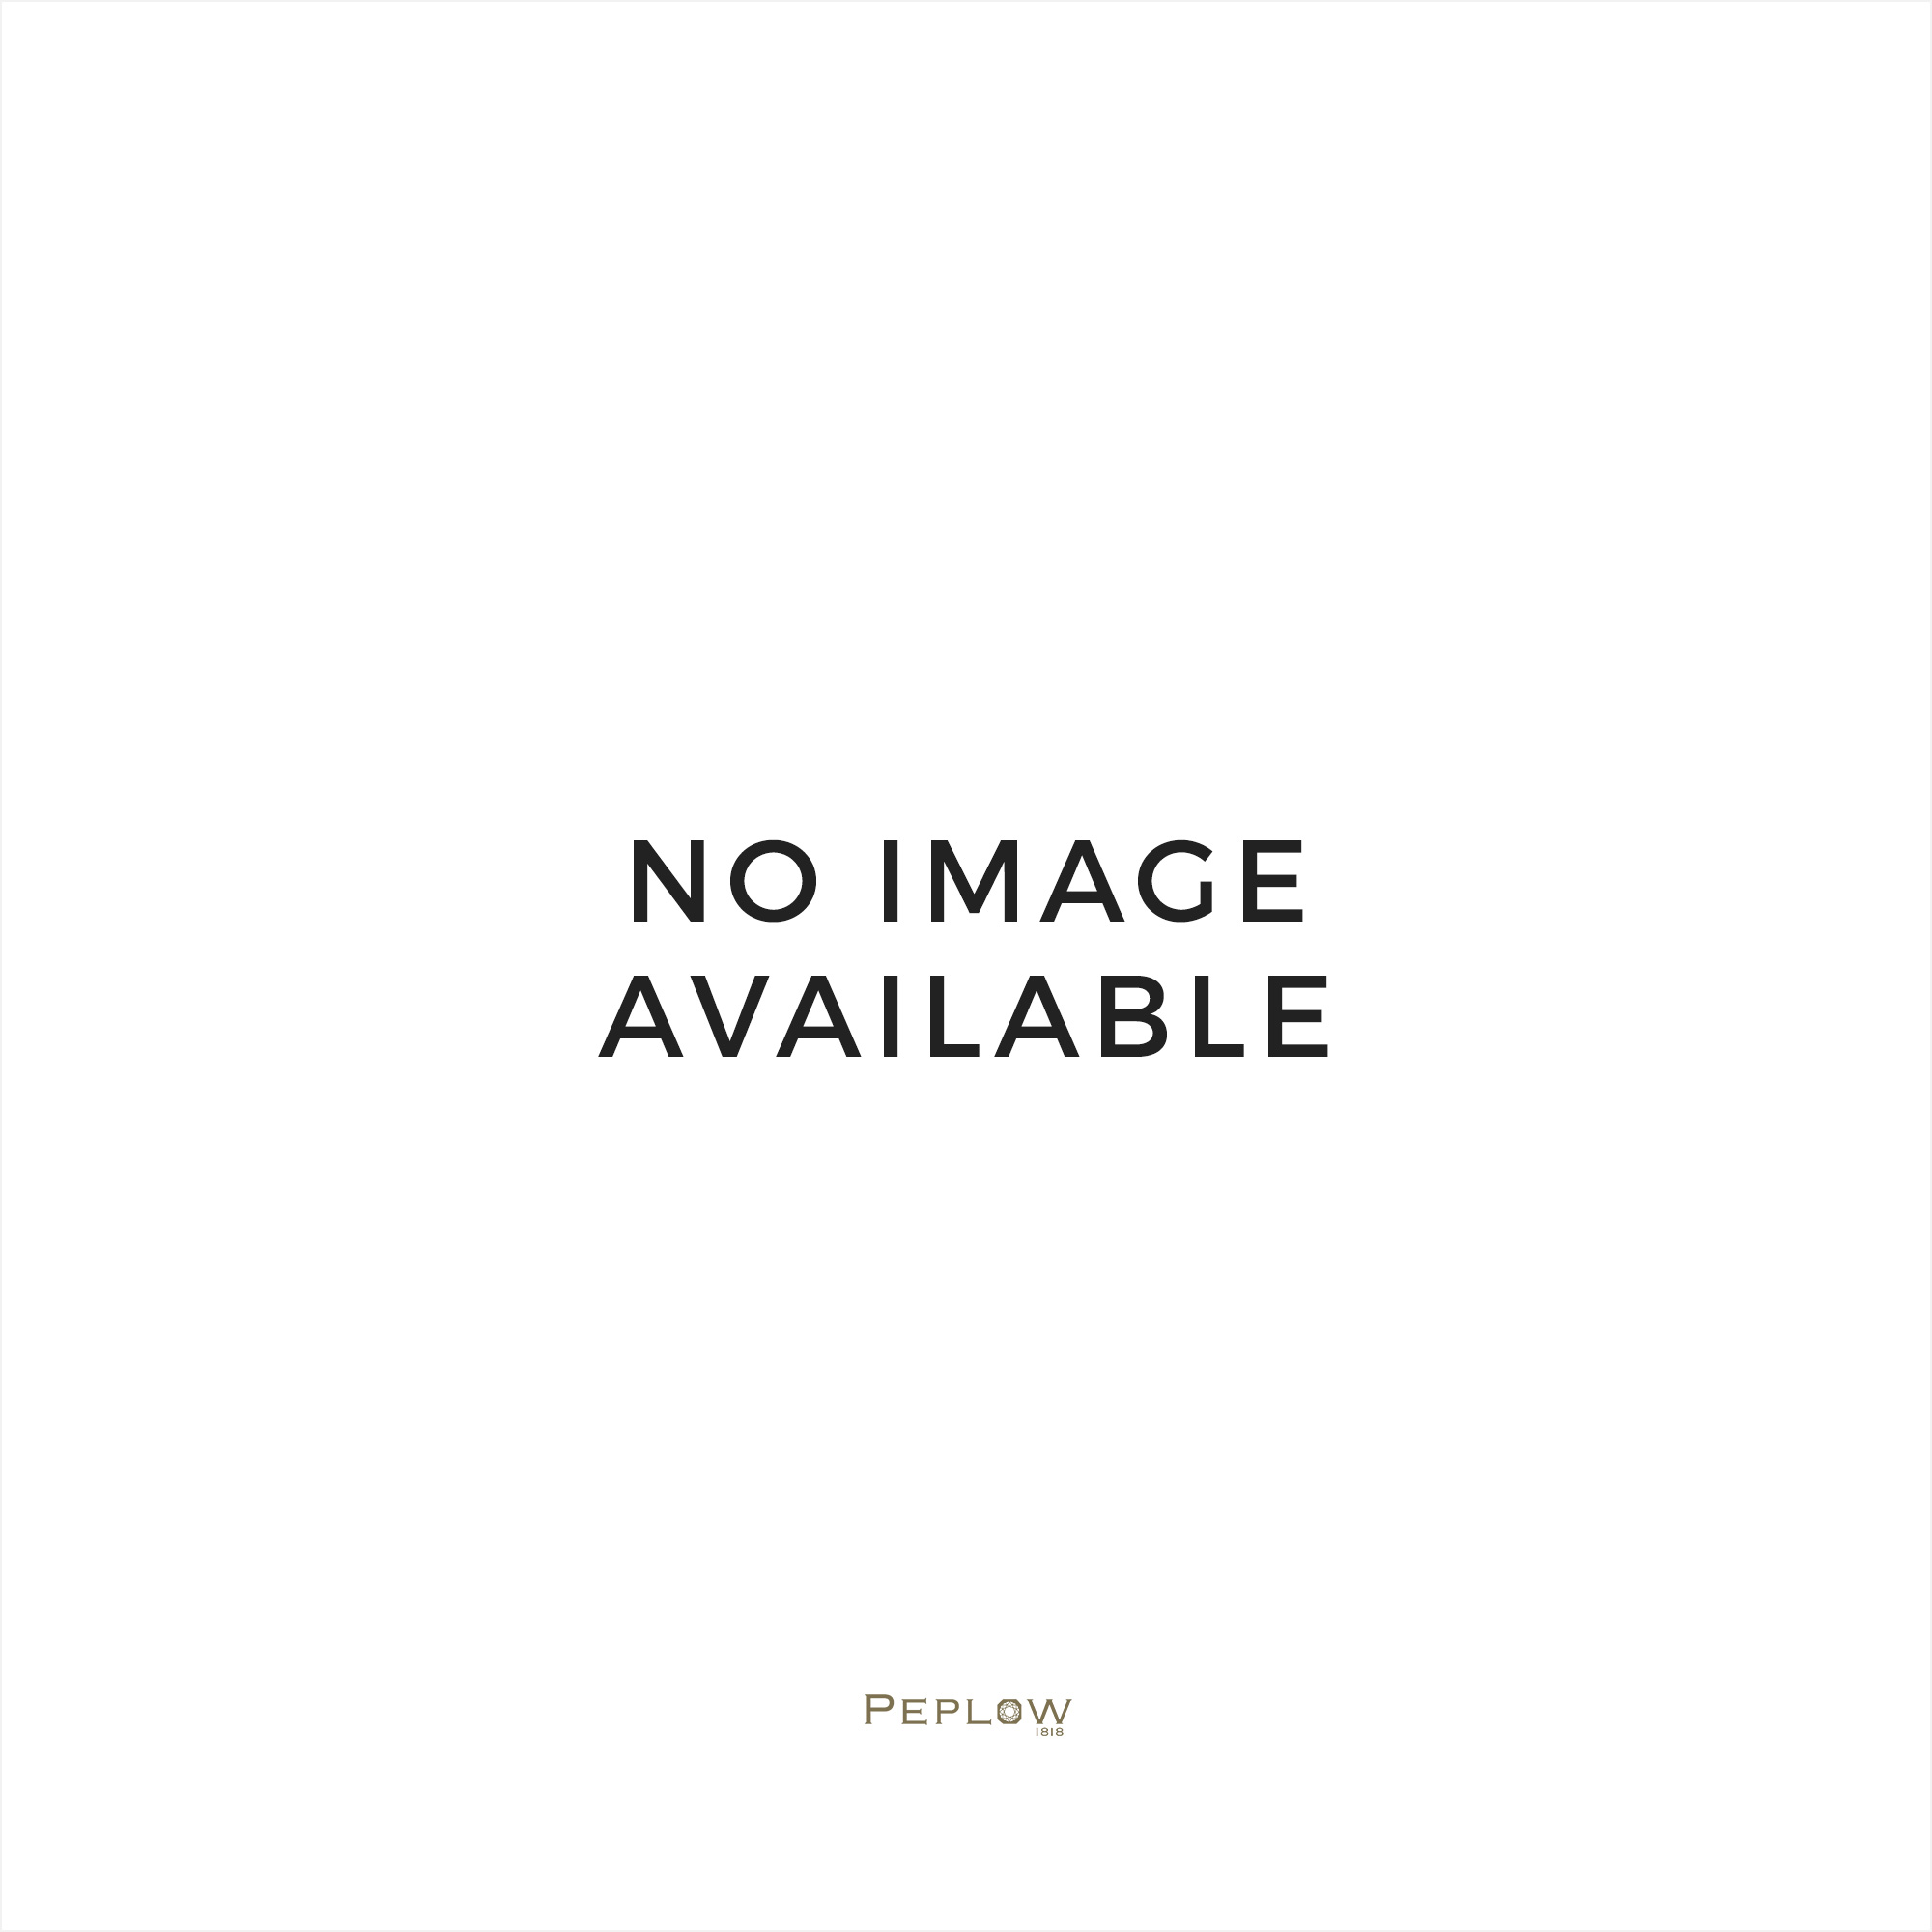 Citizen Watches Citizen Gents Eco Drive on Black Strap Watch